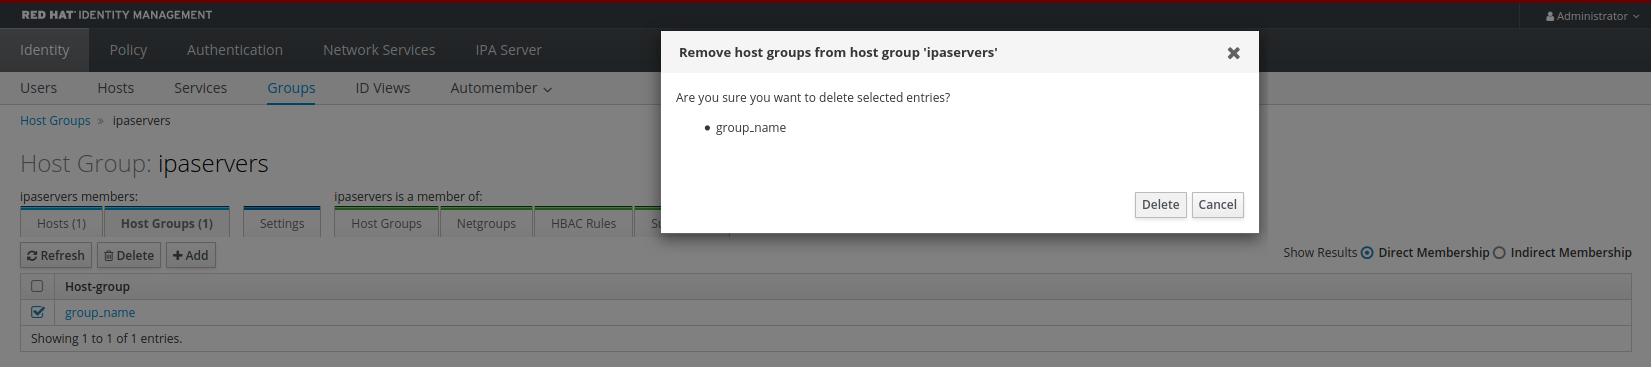 """A screenshot of a pop-up window titled """"Remove host groups from host group ipaservers."""" The content says """"Are you sure you want to delete the selected entries"""" and """"group_name"""" below that. There are """"Delete"""" and """"Cancel"""" buttons at the bottom right corner of the window."""